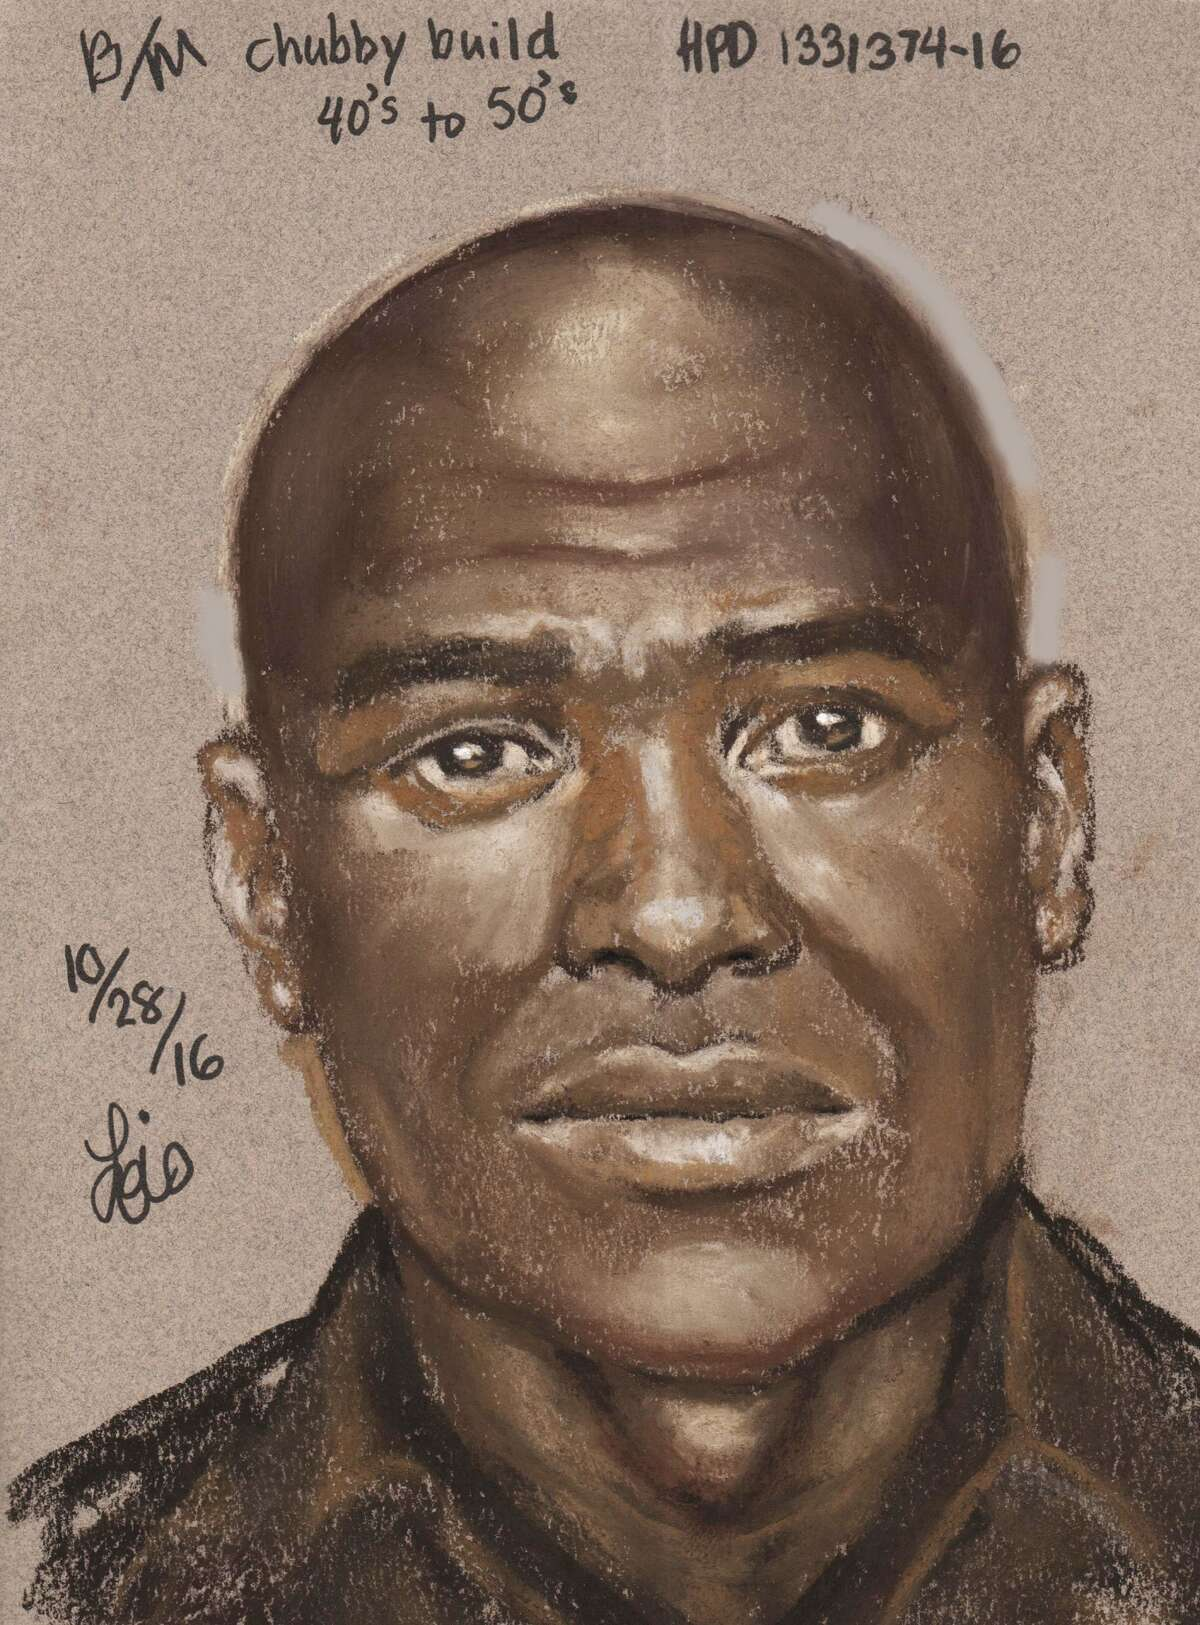 Police have released the sketch of a man suspected in the kidnapping of a 13-year-old boy about 8:15 a.m. Oct. 18, 2016,  in the 7600 block of Tidwell in northwest Houston. (HPD)